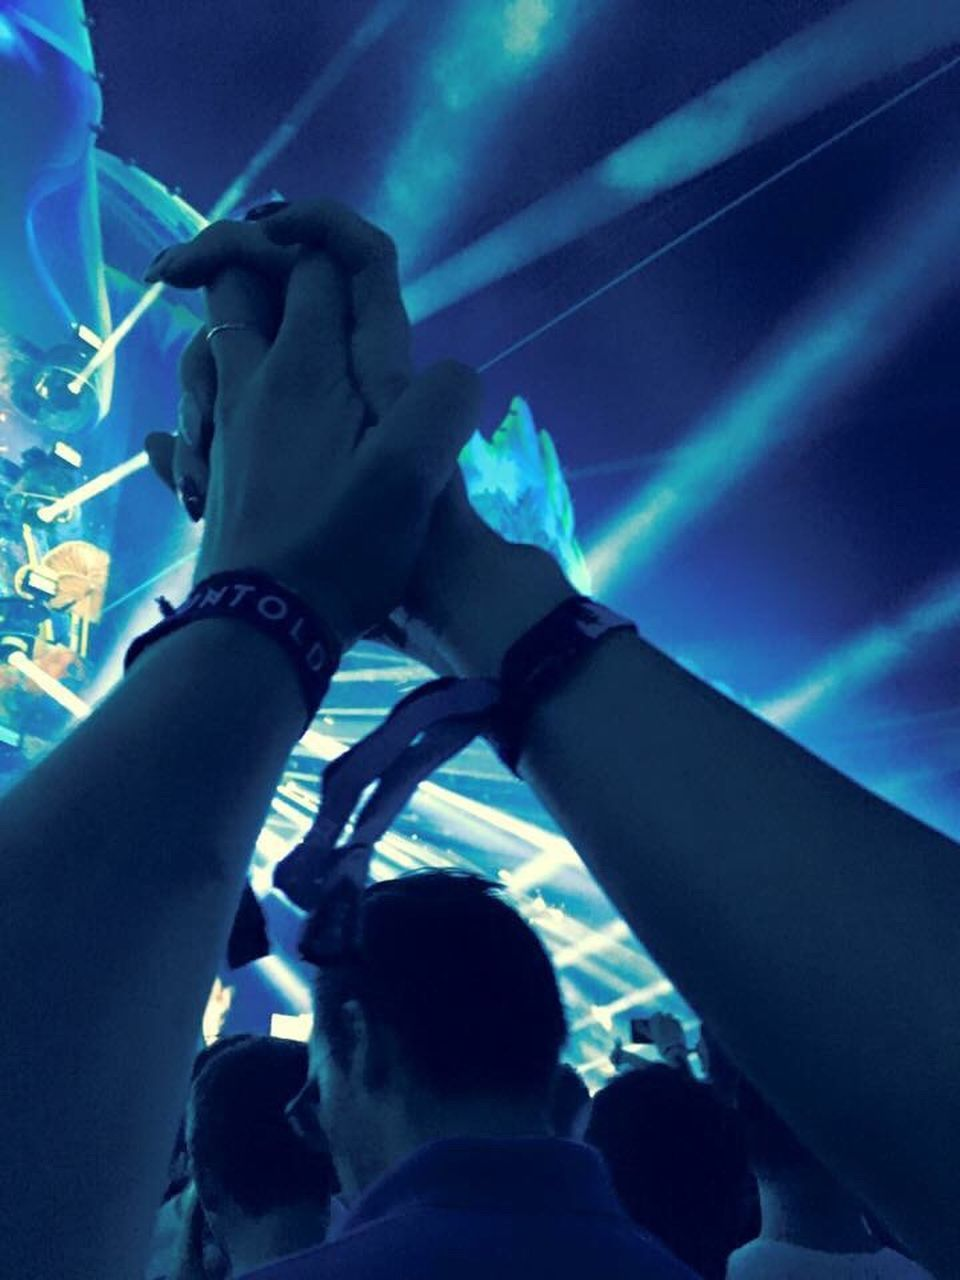 human body part, human hand, arts culture and entertainment, human arm, event, performance, dancing, music, people, performing arts event, nightlife, crowd, close-up, adult, night, indoors, adults only, popular music concert, young adult